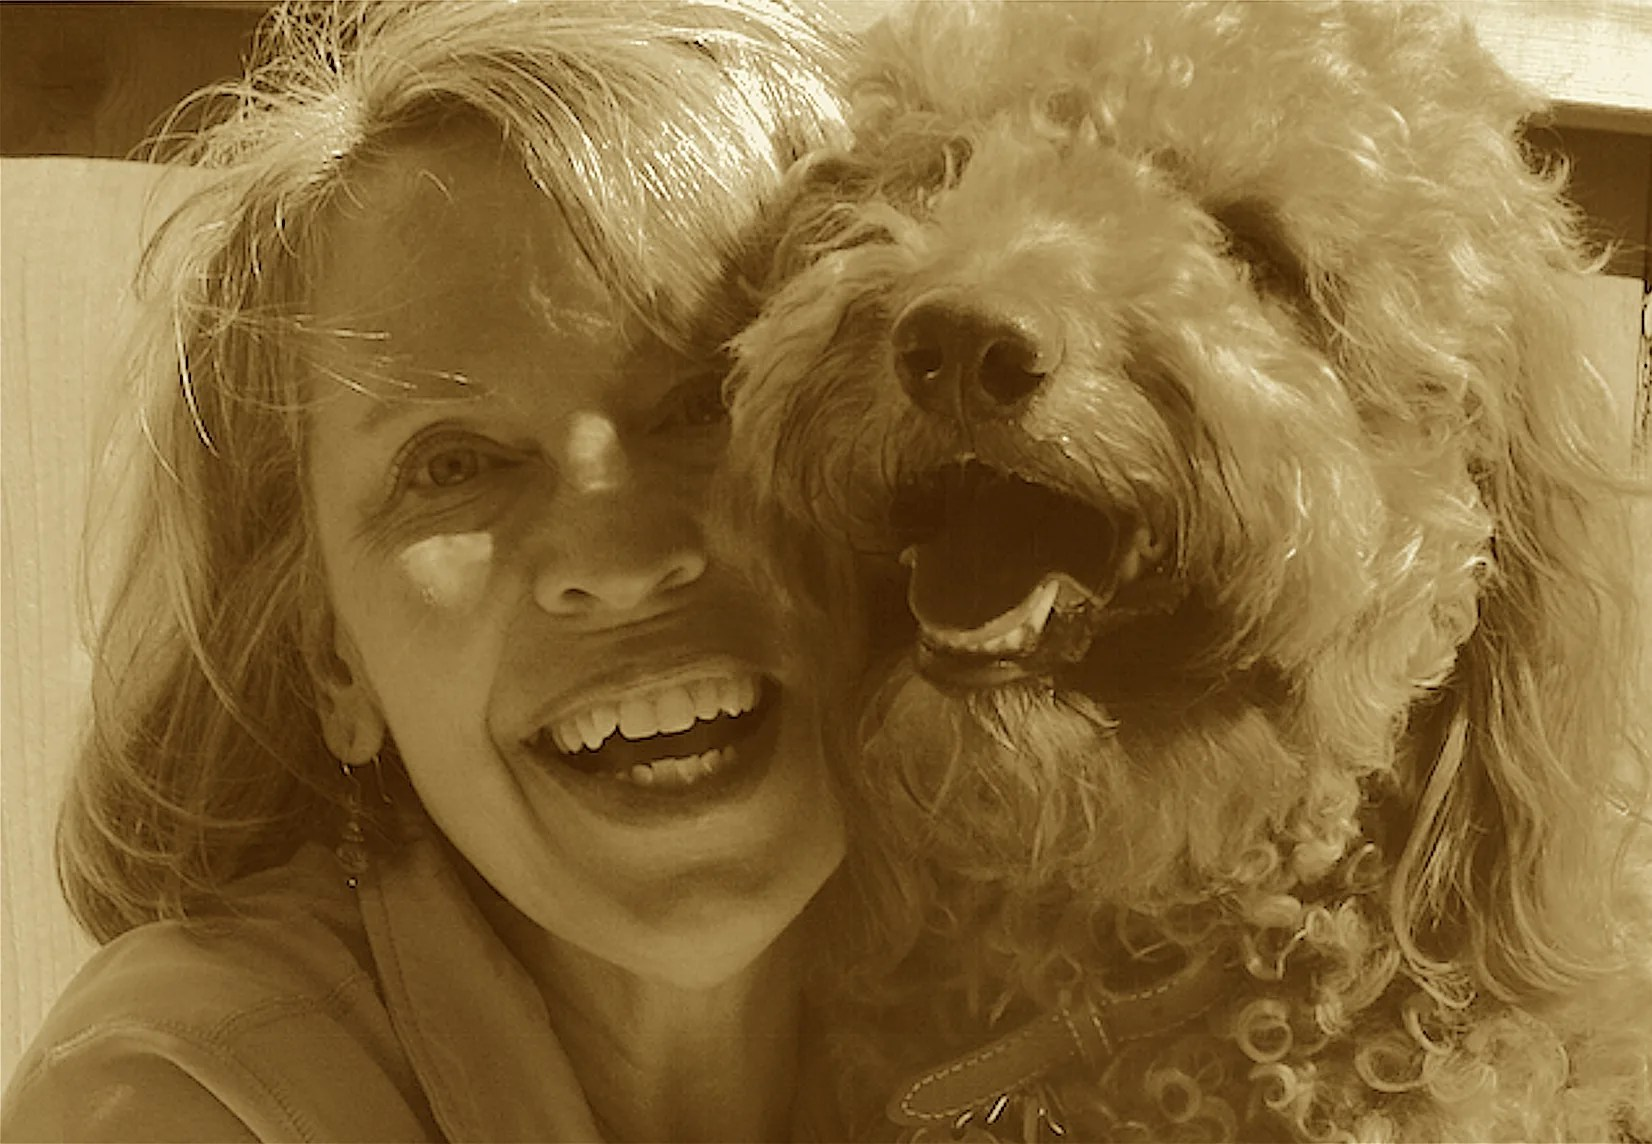 Happy-Go-Doodle, goldendoodle dog, and her pet parent